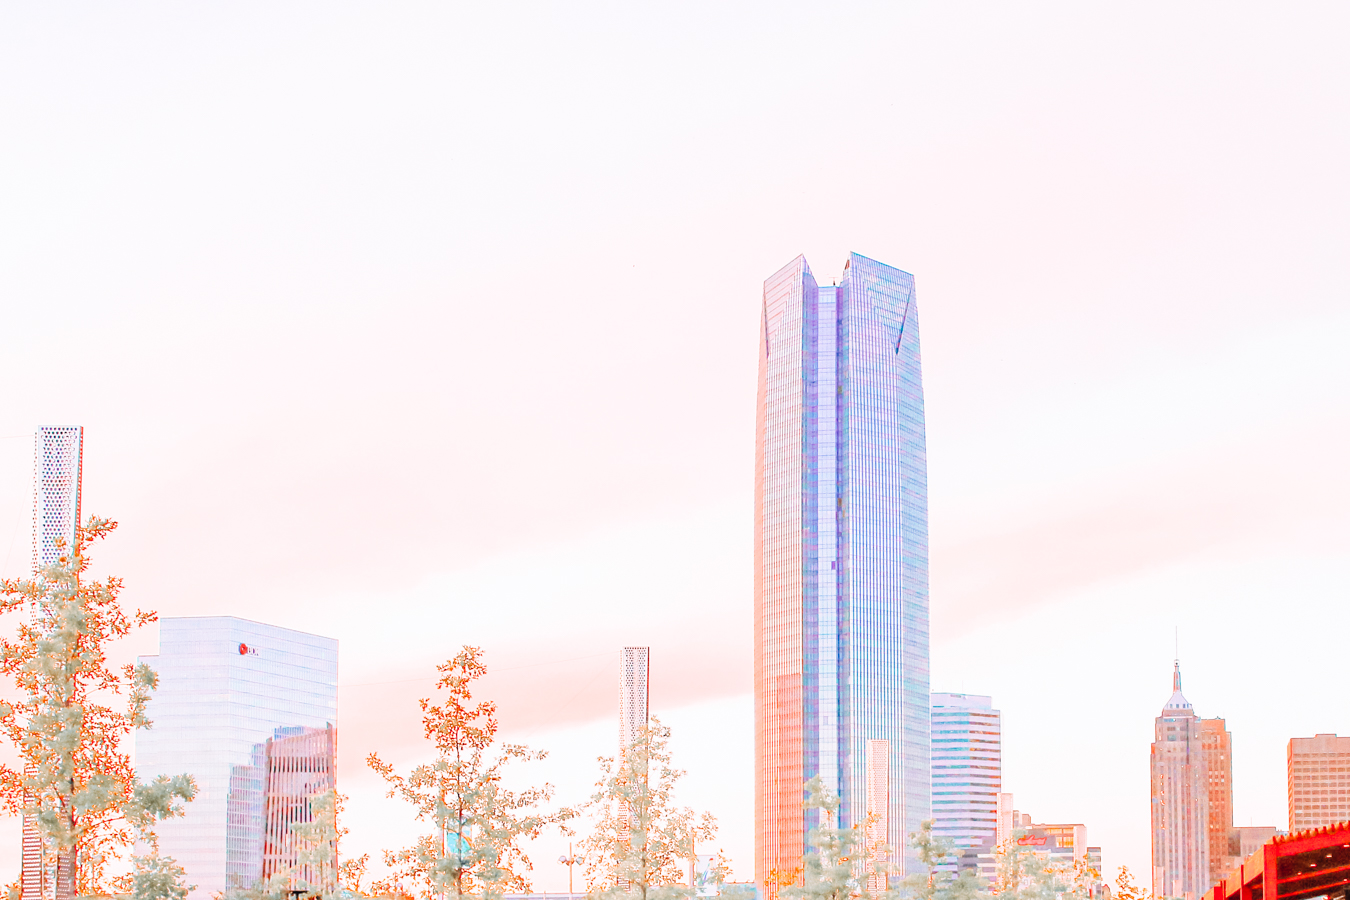 Trees and buildings in Oklahoma City